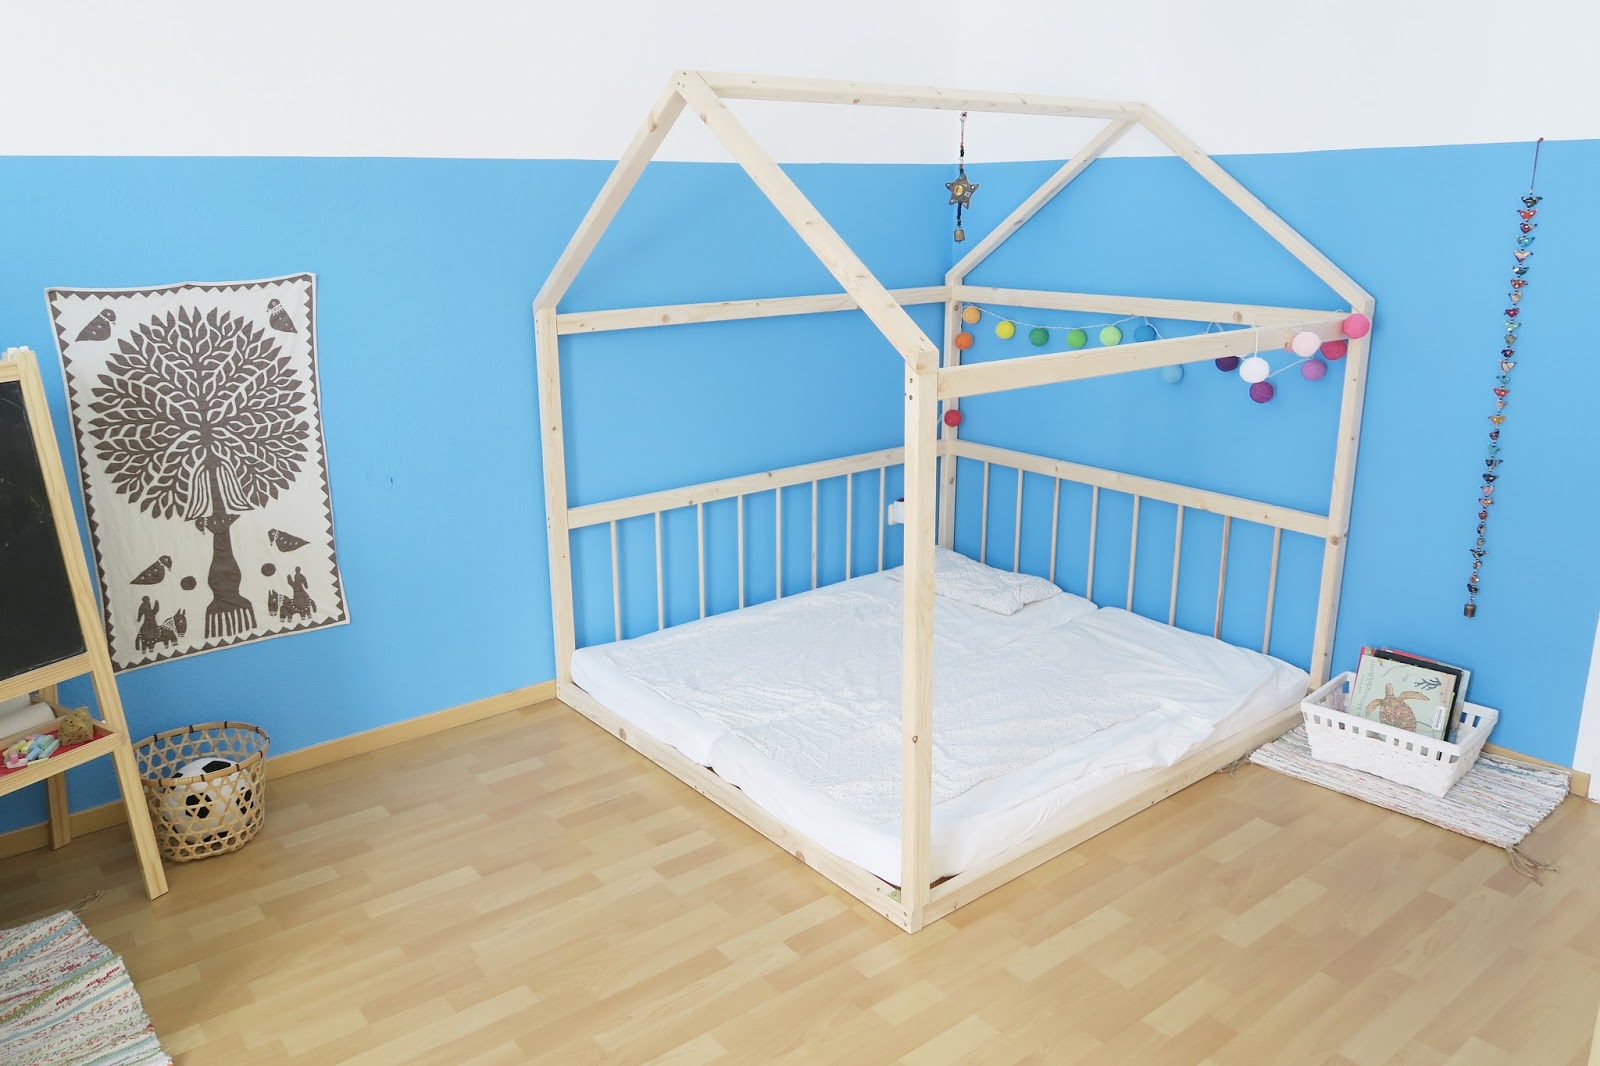 emil und mathilda unser montessori inspiriertes kinderzimmer f r 2 kinder. Black Bedroom Furniture Sets. Home Design Ideas